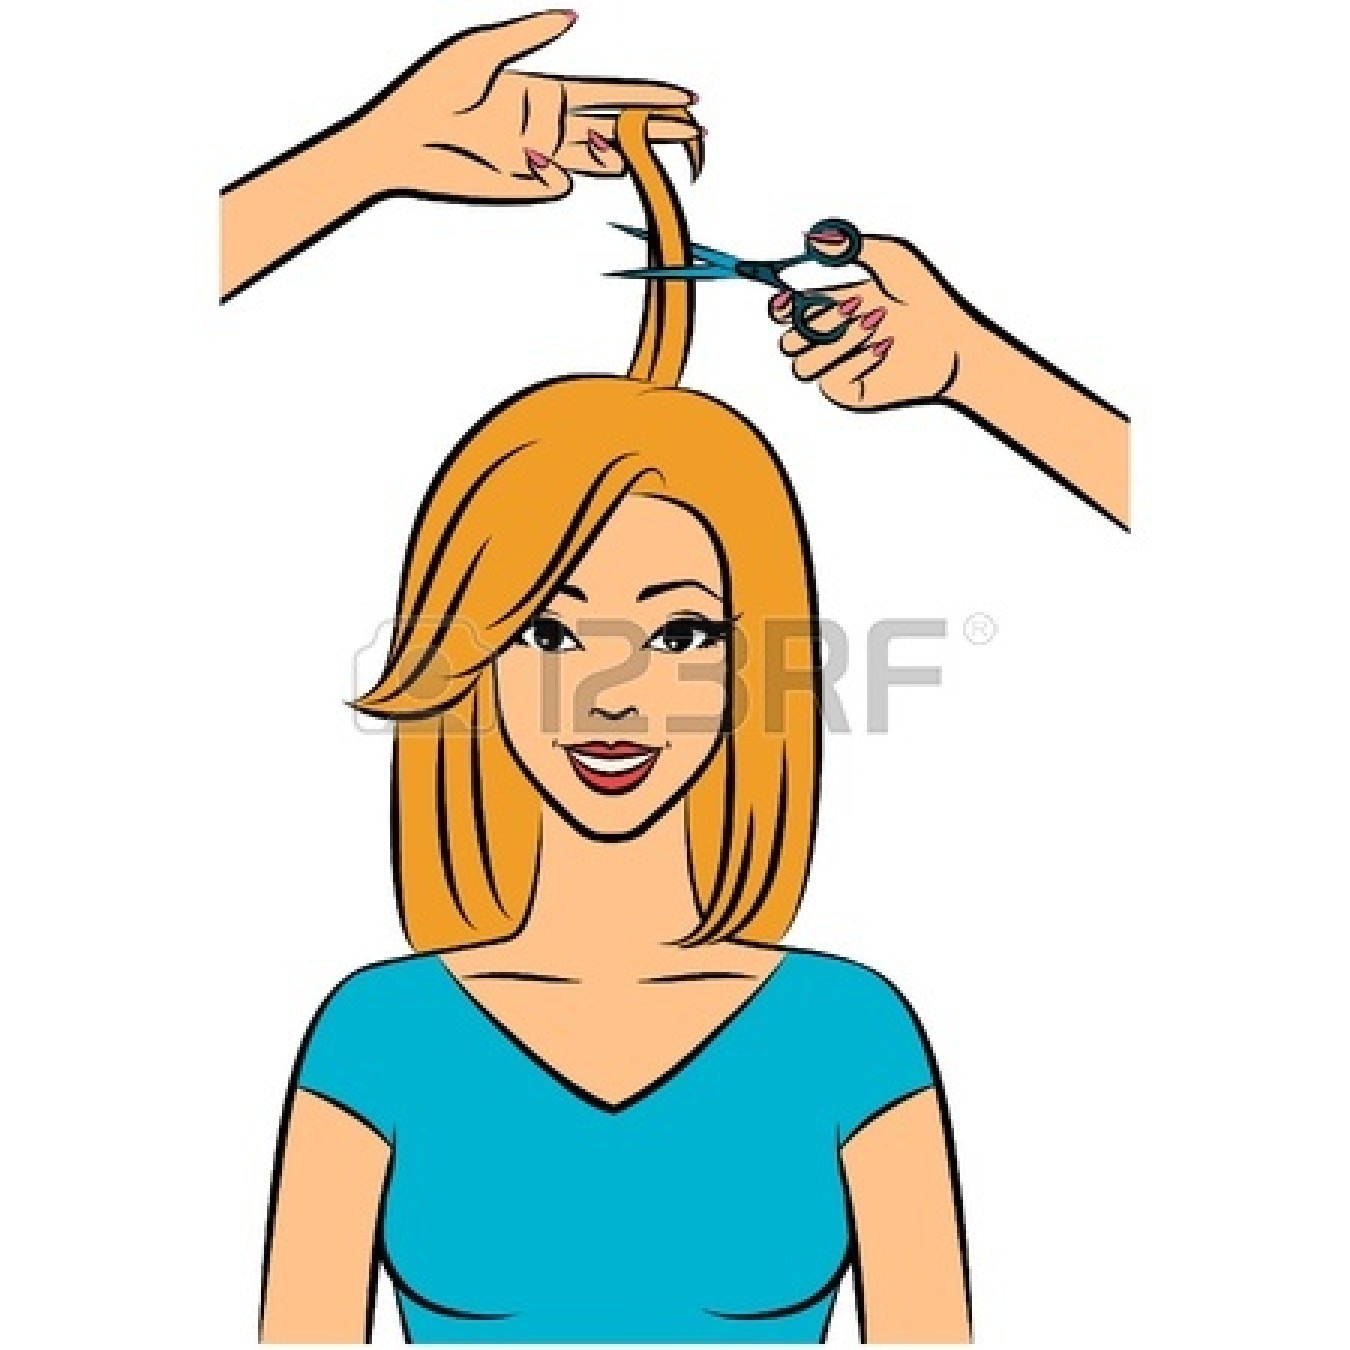 Cutting hair clipart image free library Hair Cut Clipart   Free download best Hair Cut Clipart on ... image free library